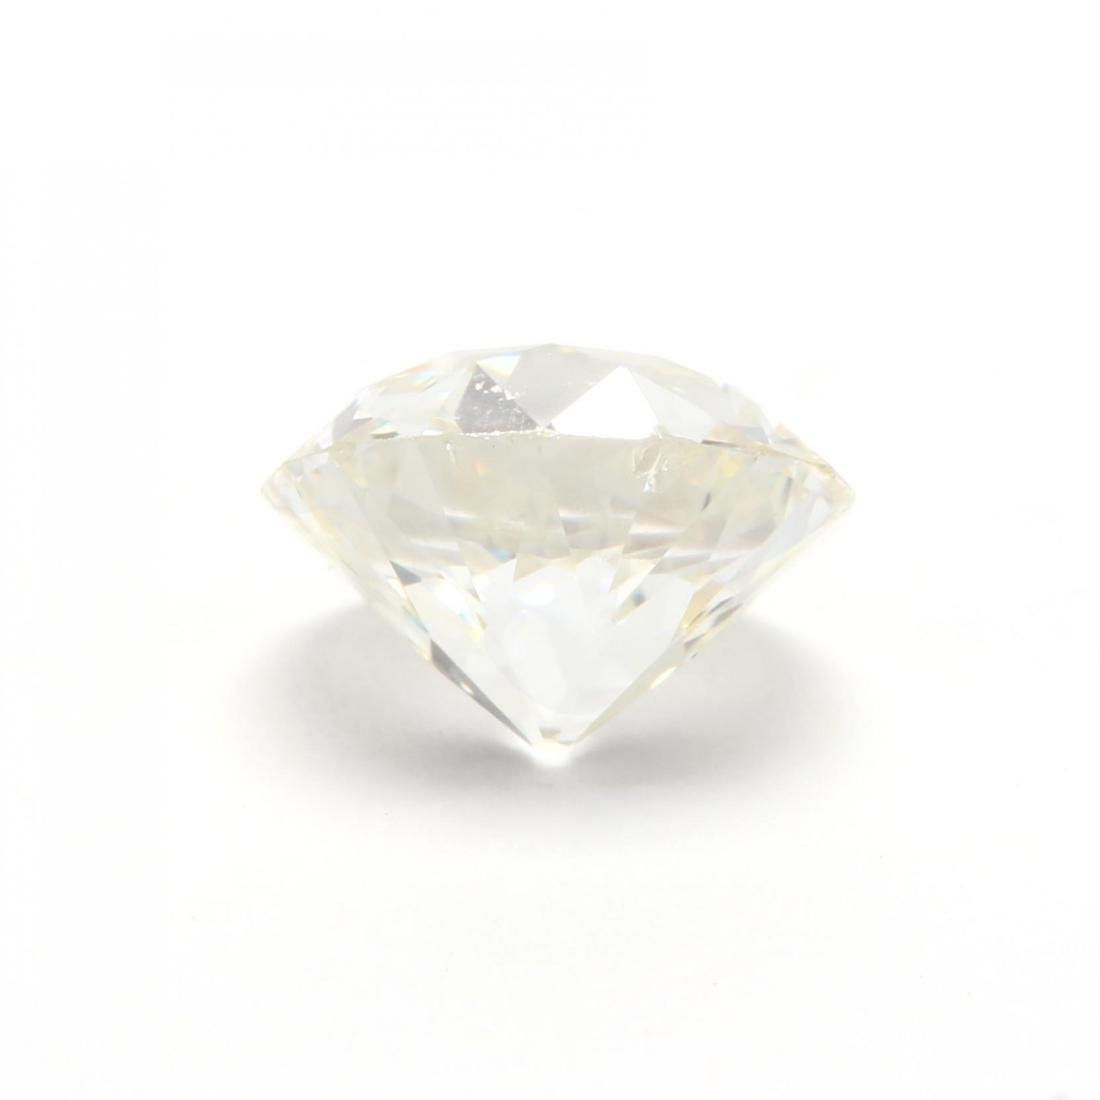 Unmounted Old European Cut Diamond with 14KT White Gold - 4